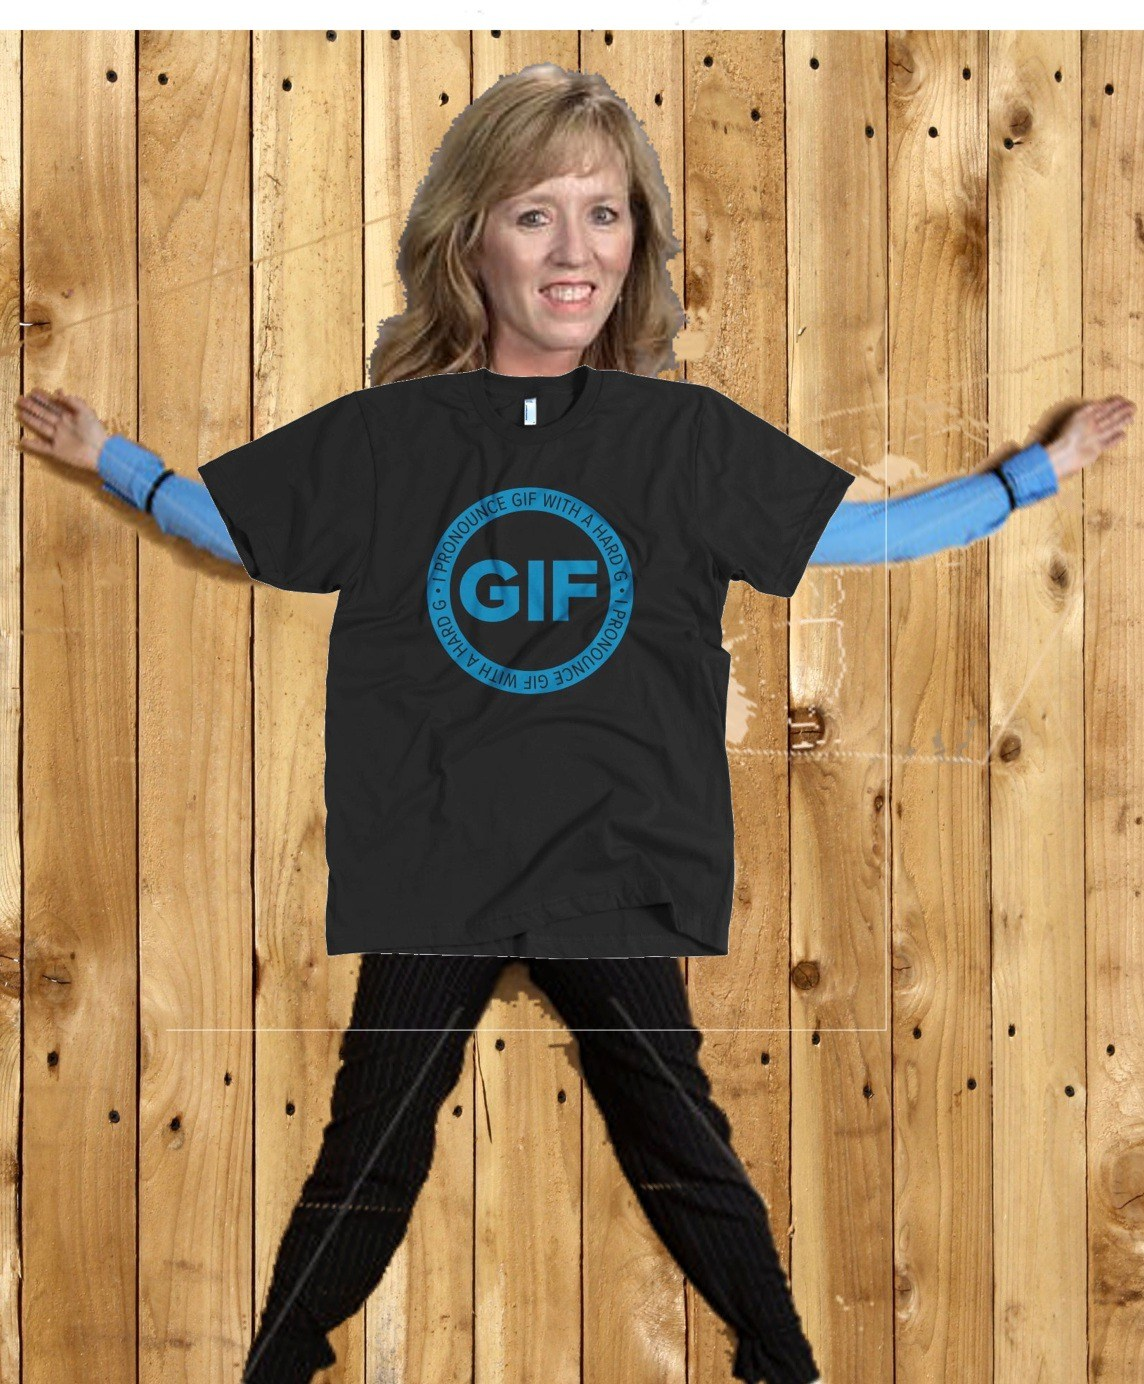 Gif as in GIF...T